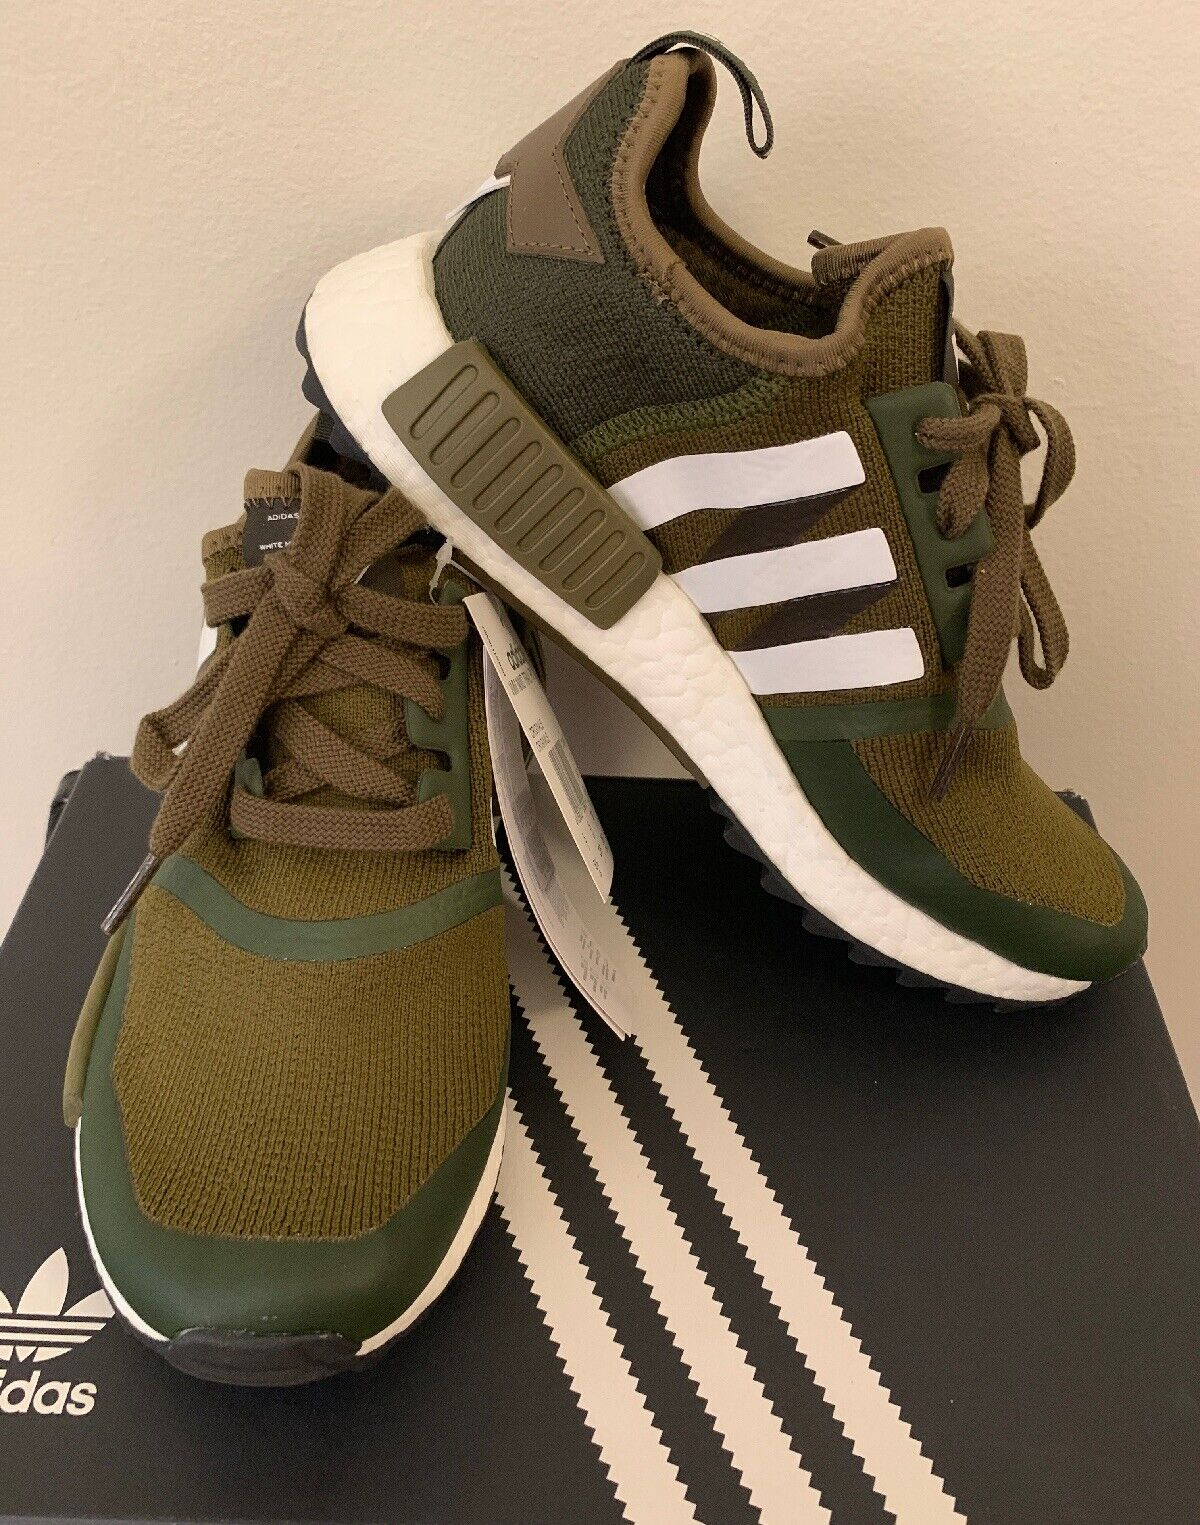 6aaec39751564 Men s Size 5.5 Adidas NMD NMD NMD Trail PK White Mountaineering Women s 6.5  CG3647 ec52f0